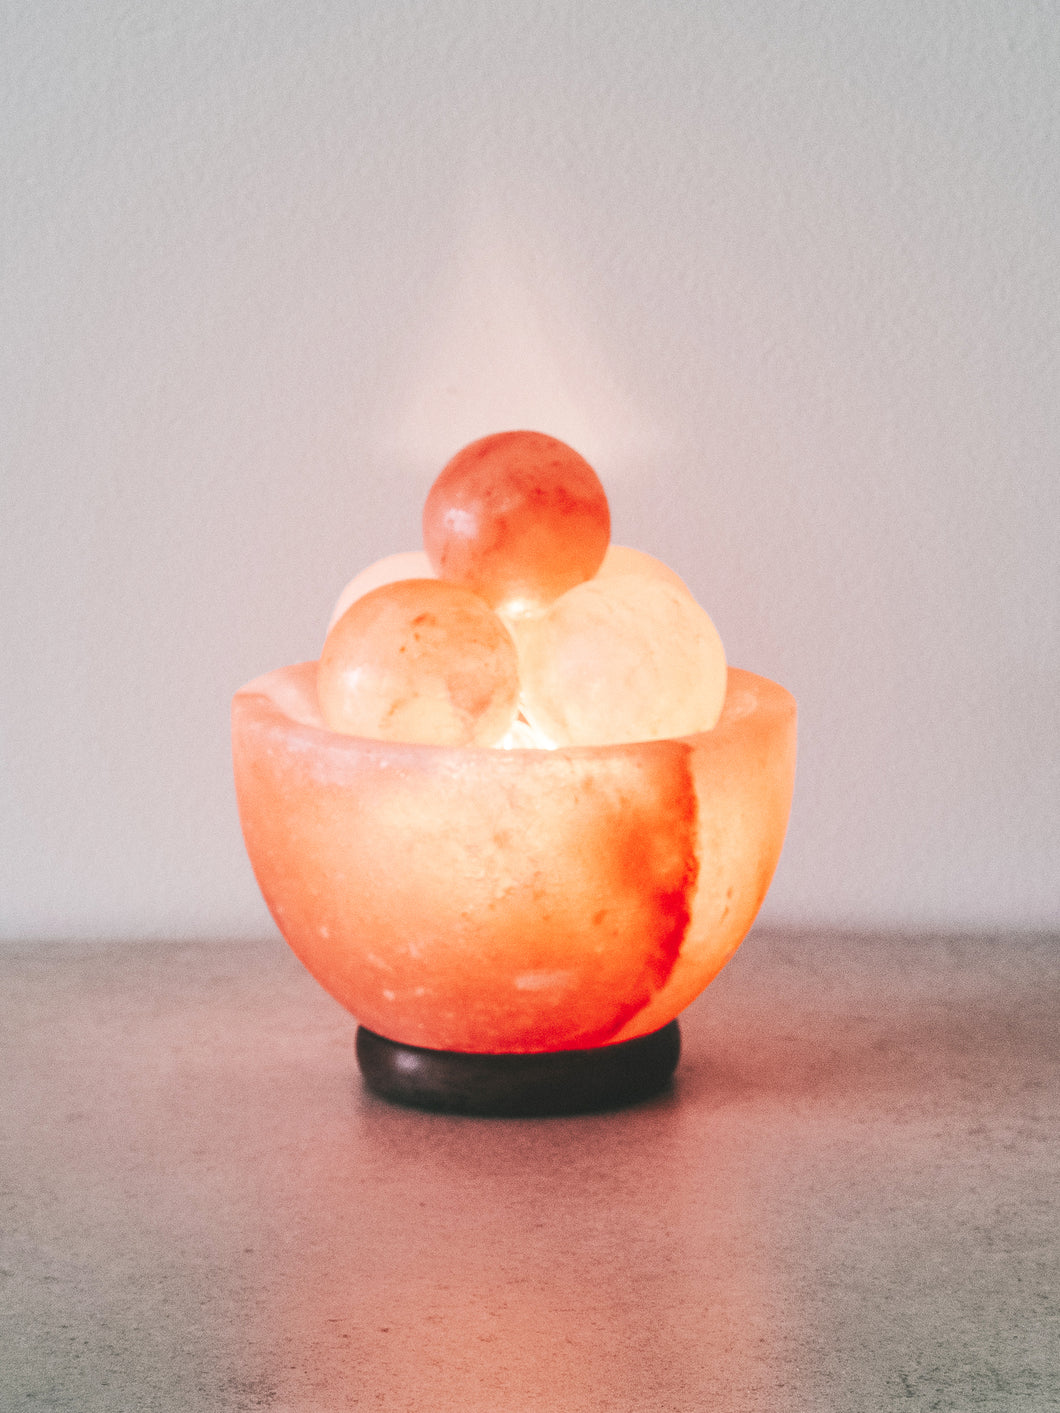 Himalayan Salt Fire Bowl Lamp - With Massage Balls